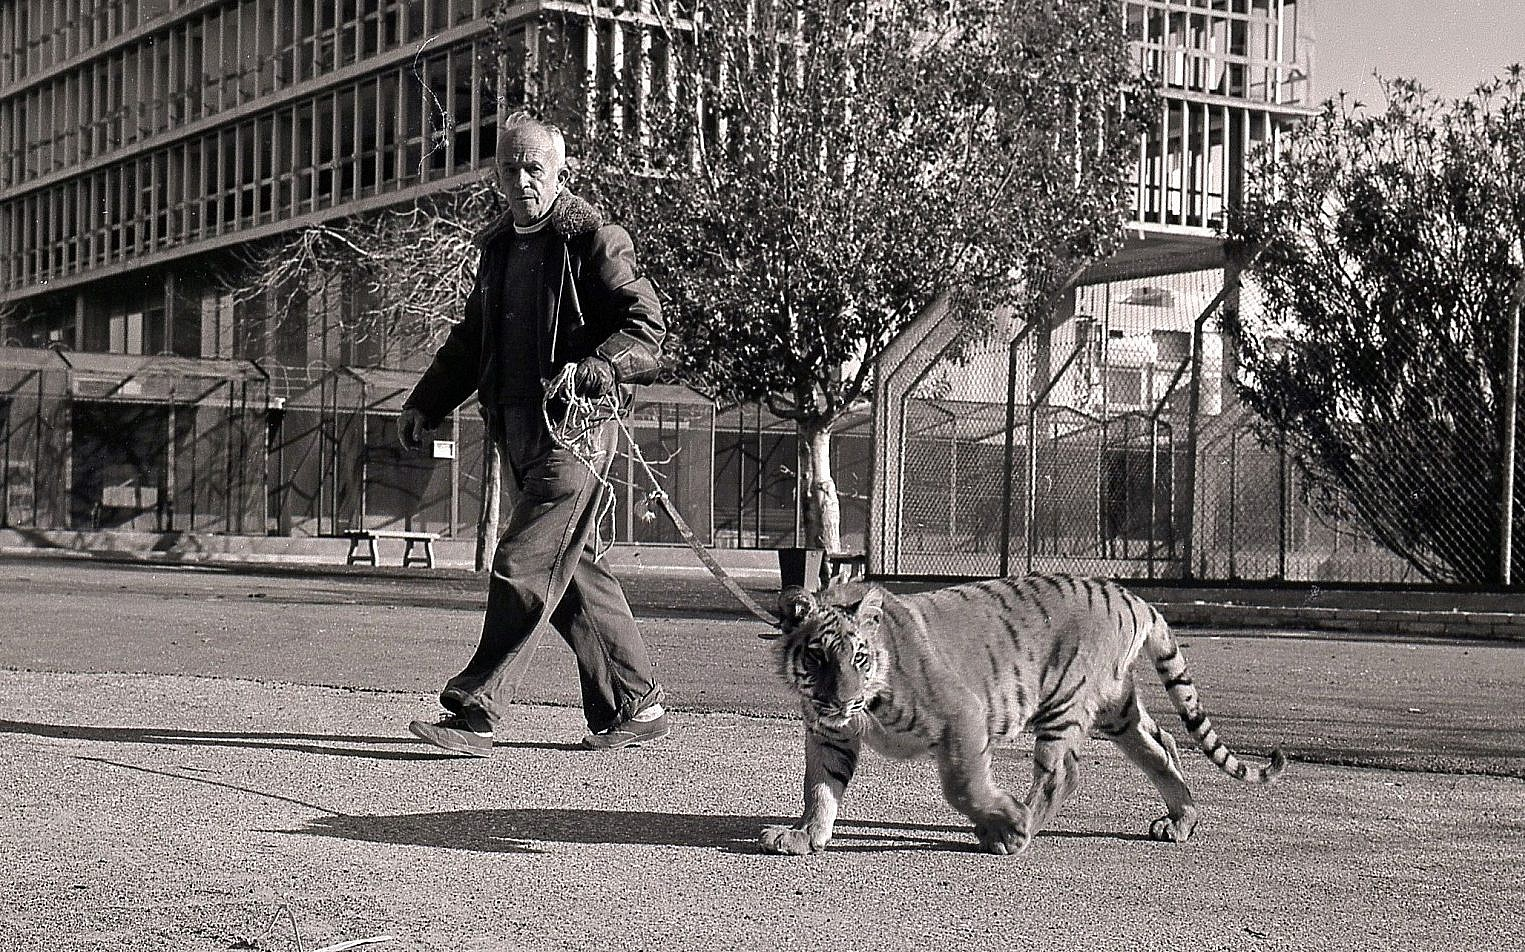 Head Tel Aviv zookeeper Johnny Zusia walking a tiger in the streets of Tel Aviv. (Courtesy Collection of Meitar Boris Carmi)